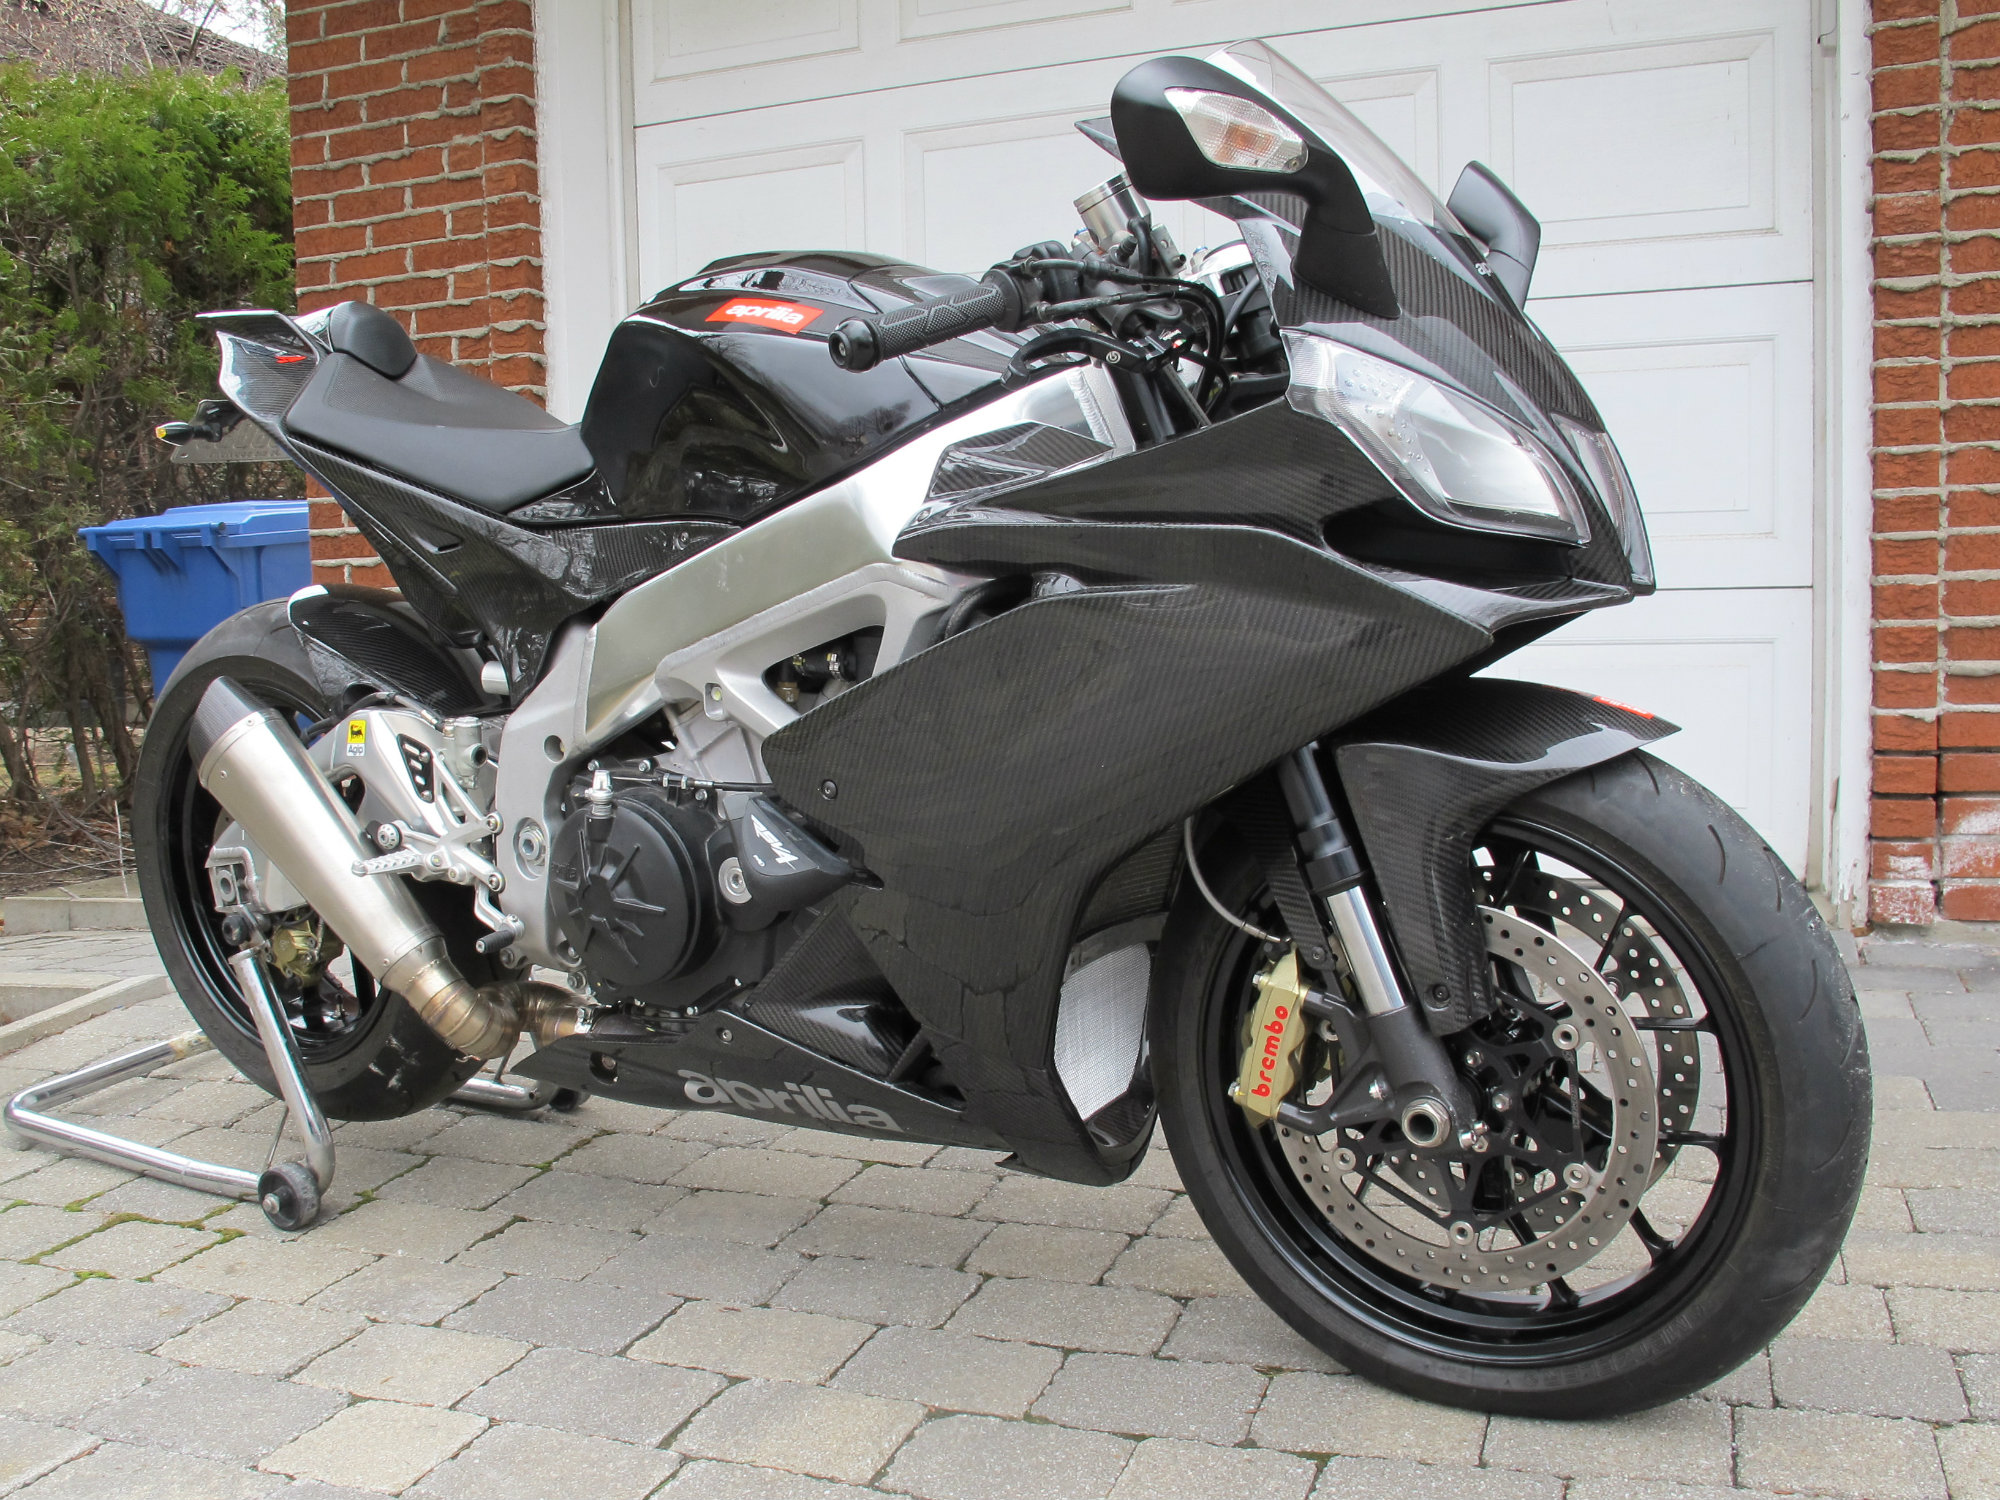 2010-rsv4-front-right-side.jpg